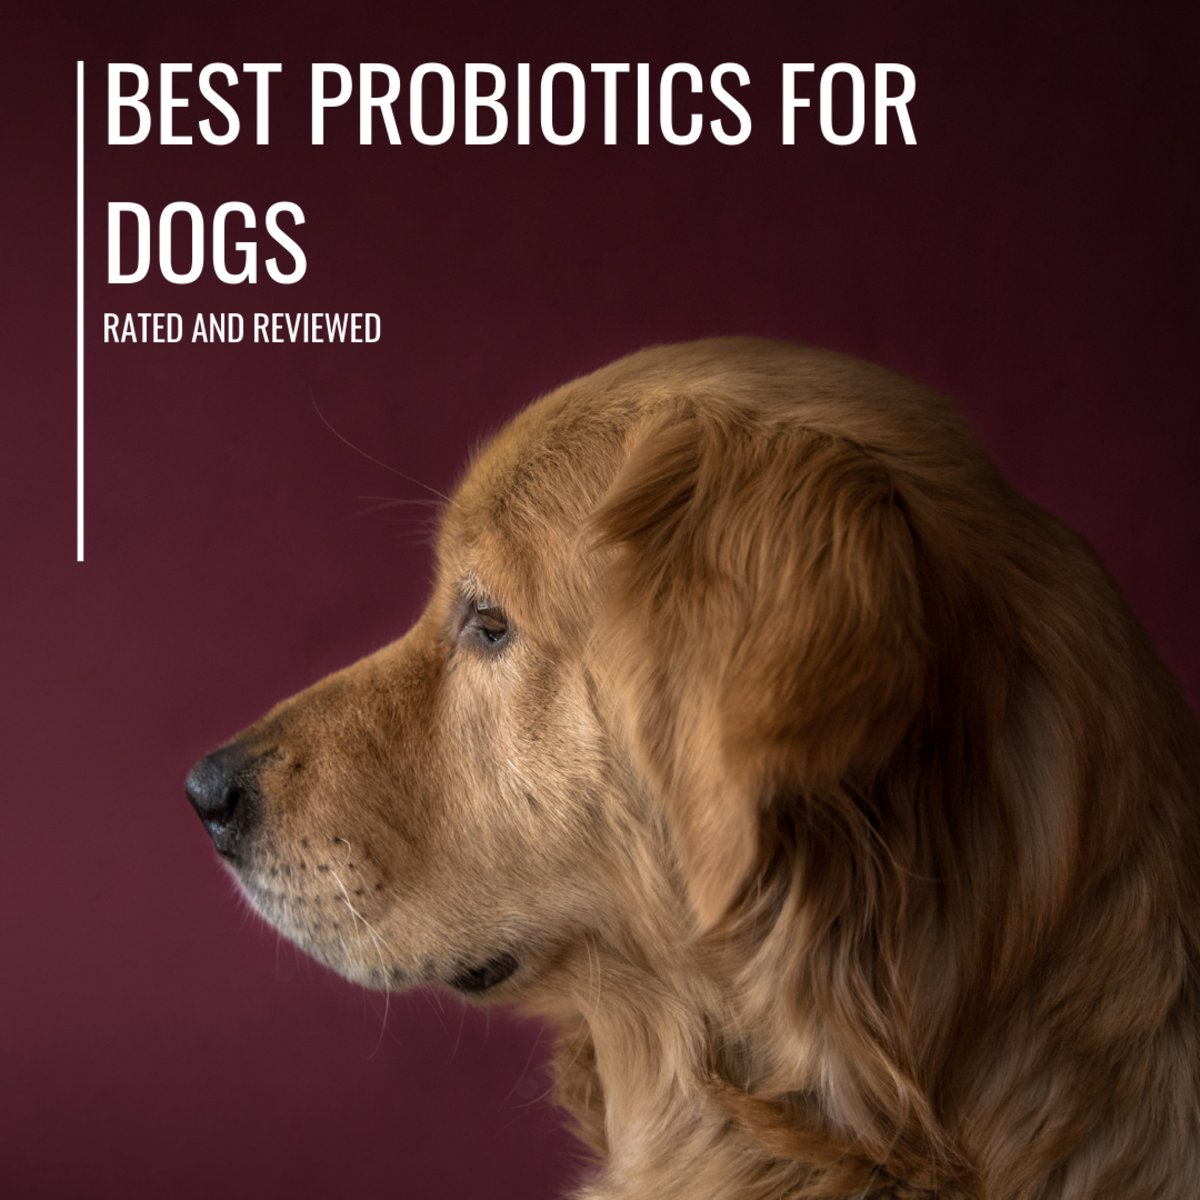 6 Best Probiotics for Dogs With Diarrhea and Allergies Rated